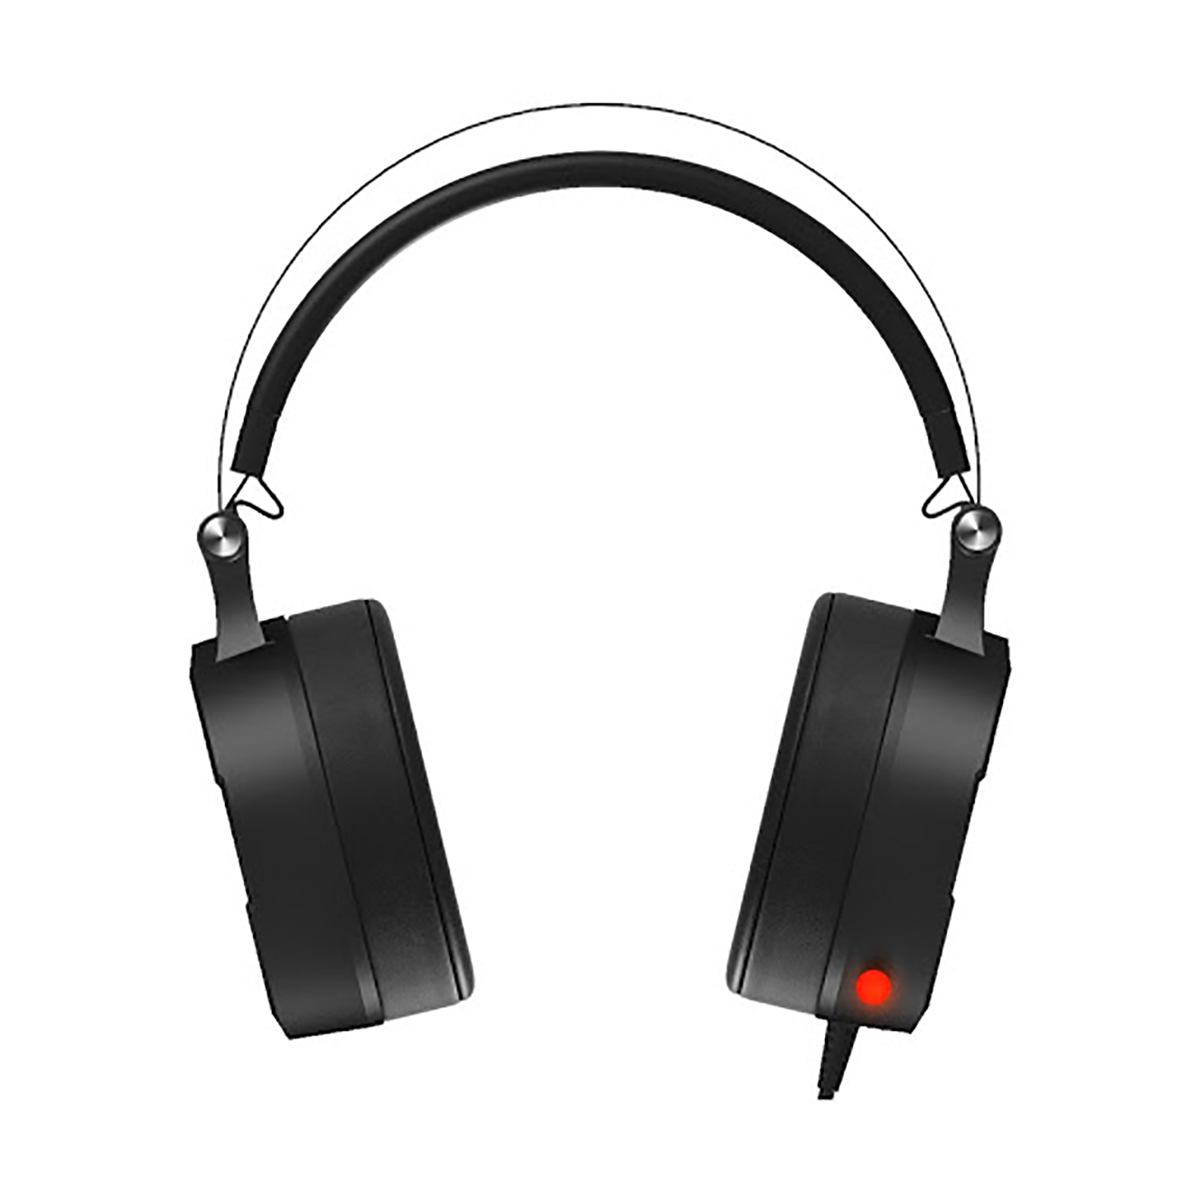 A4Tech G530 Bloody Virtual 7.1 Surround Sound Gaming Headset